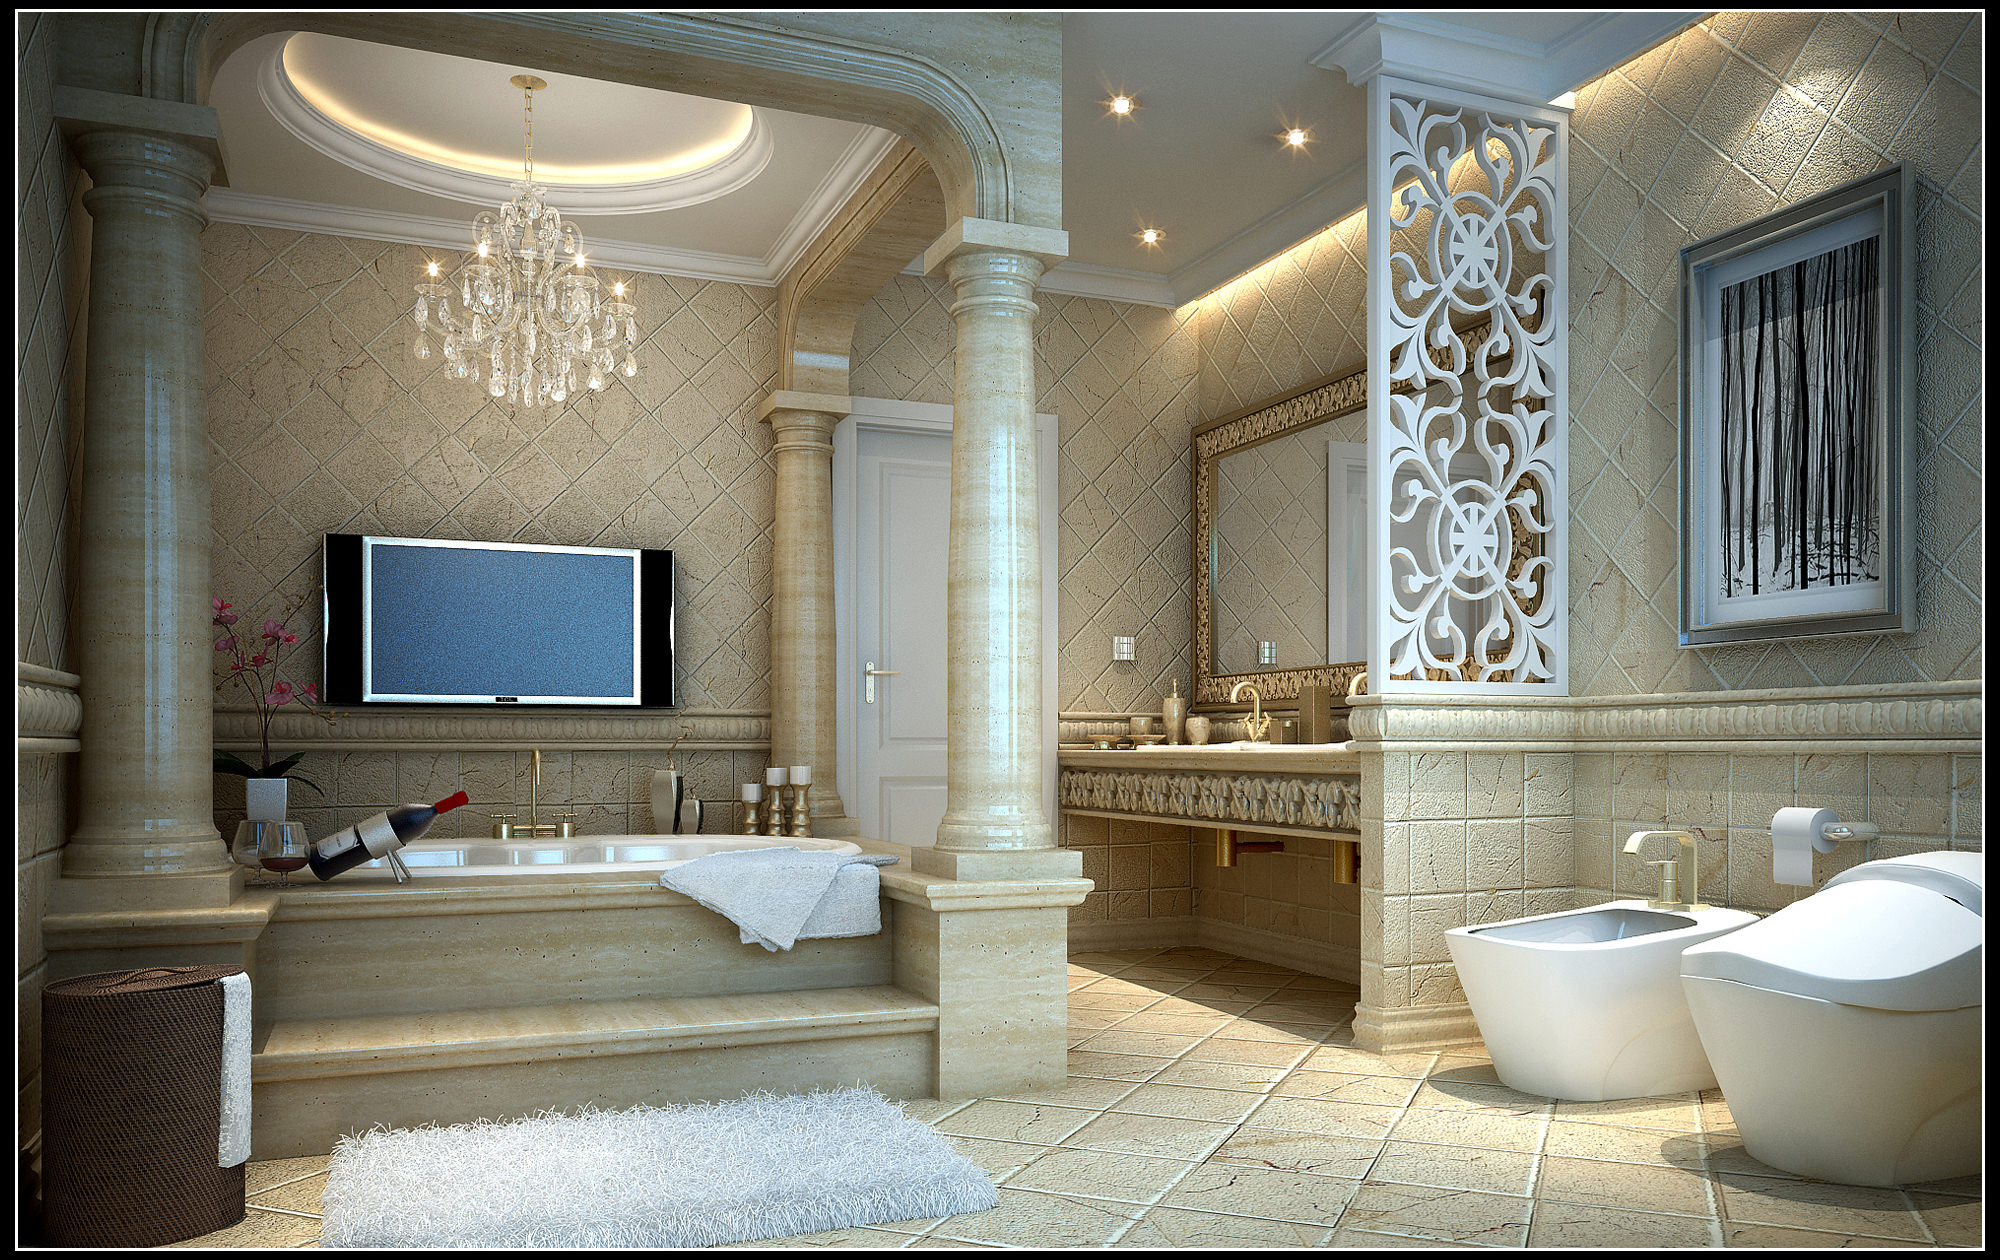 Luxurious Bathroom Fully Furnished And Decorated 3d Model Max 1